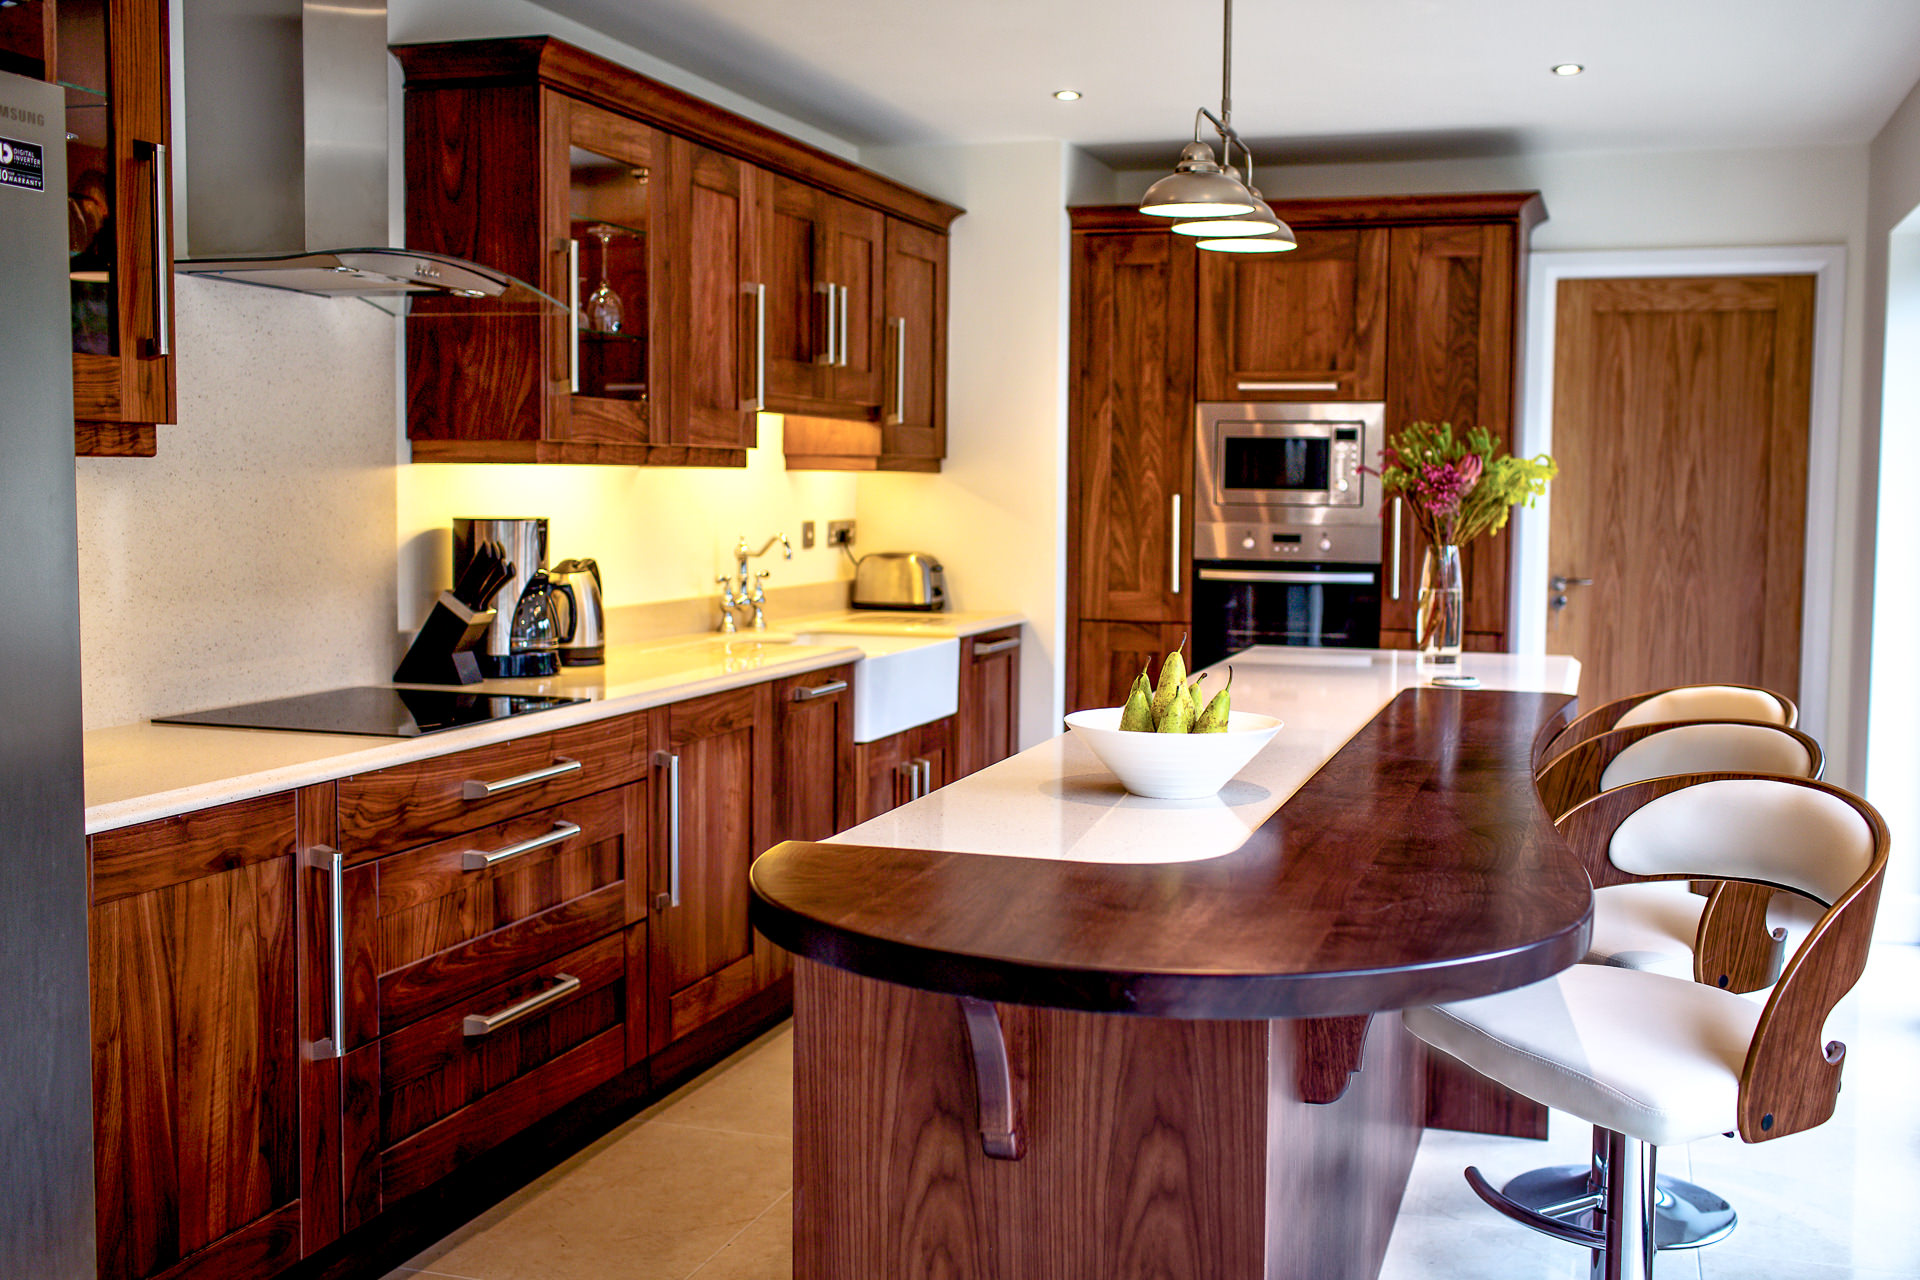 Celtic interiors, Walnut Kitchen Ref 7488 . Copyright Casey Photography 2016